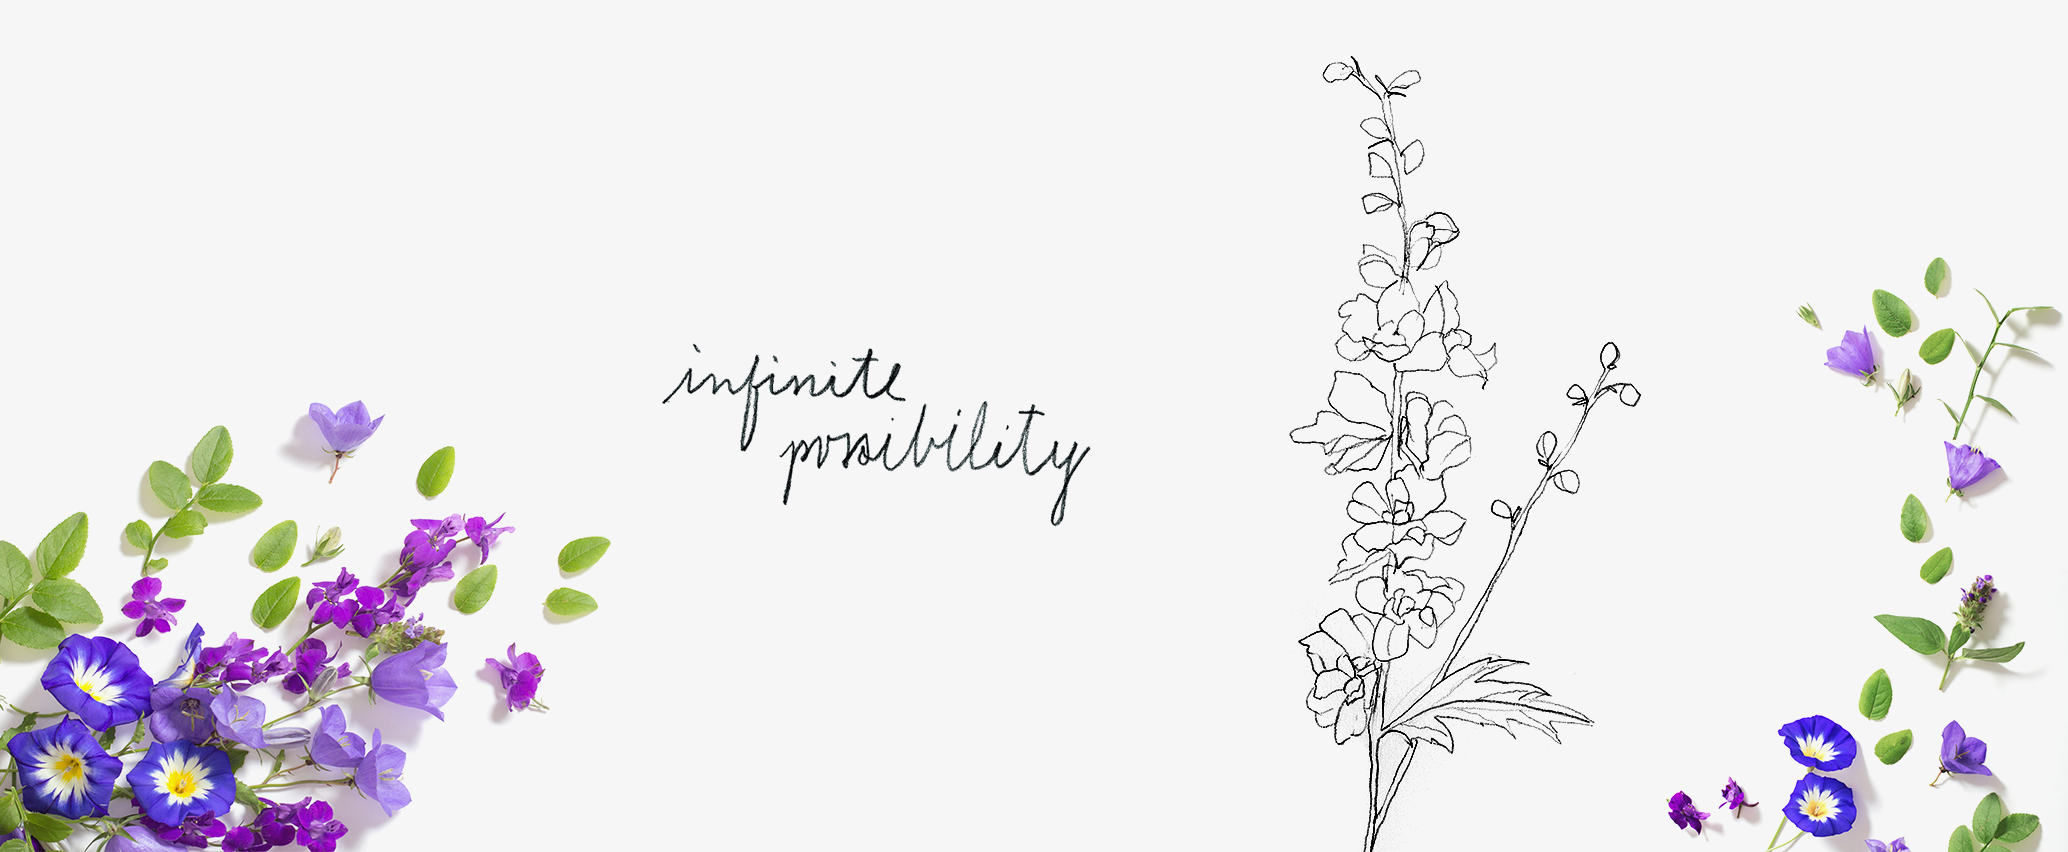 27-delphinium-infinite-possibility-poster-banner-event.png